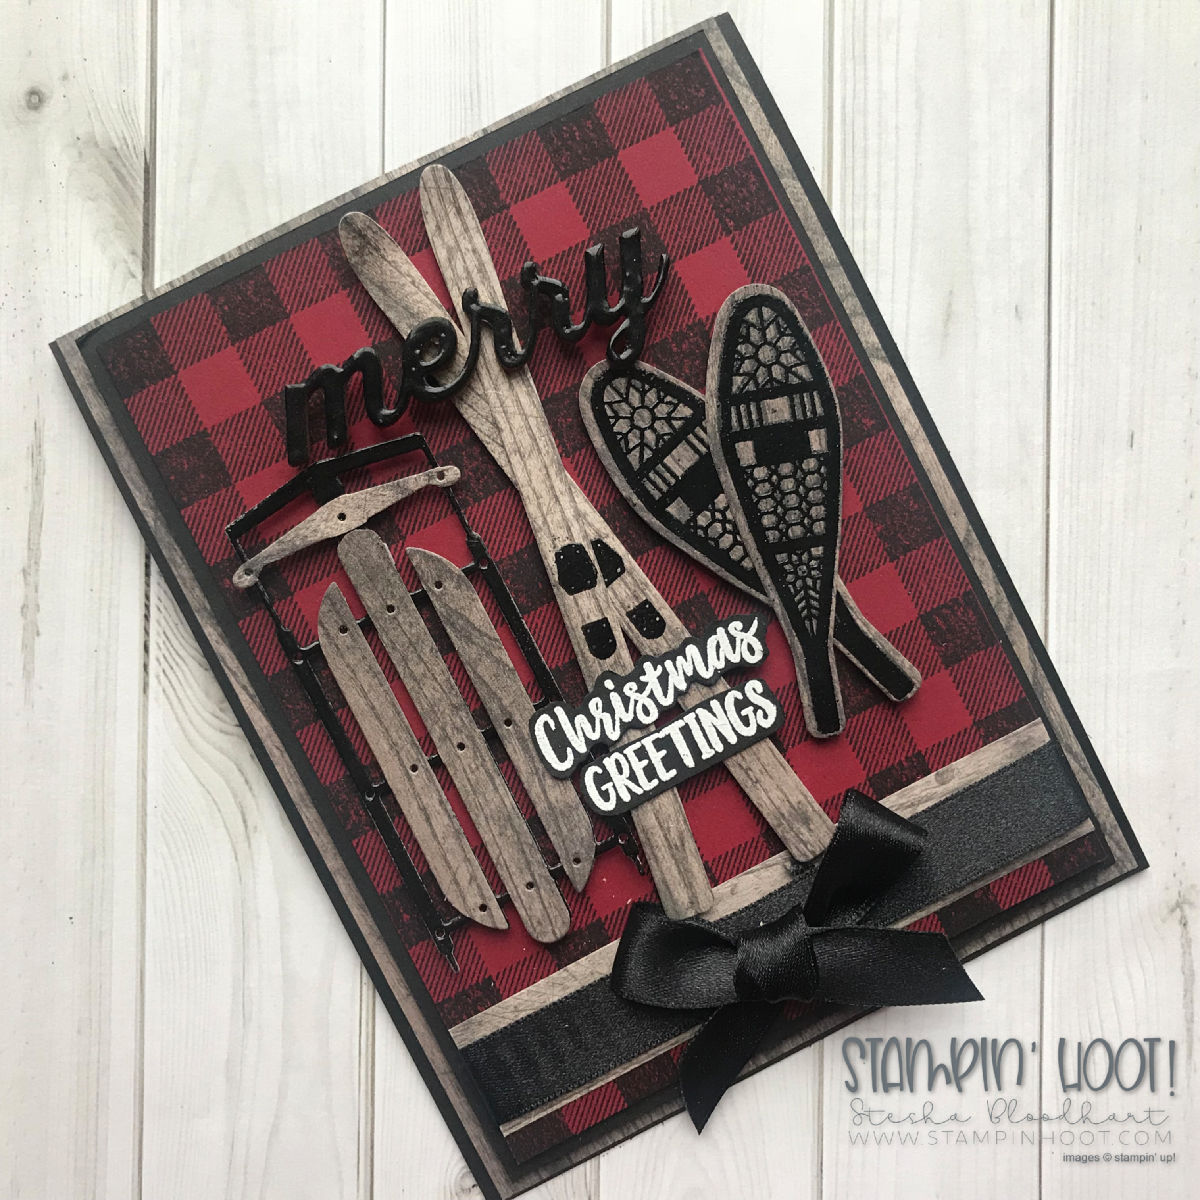 Buffalo Check Stamp Set & Alpine Adventures Bundle by Stampin' Up! Northwoods Christmas Card created by Stesha Bloodhart. Stampin' Hoot! #steshabloodhart #stampinhoot